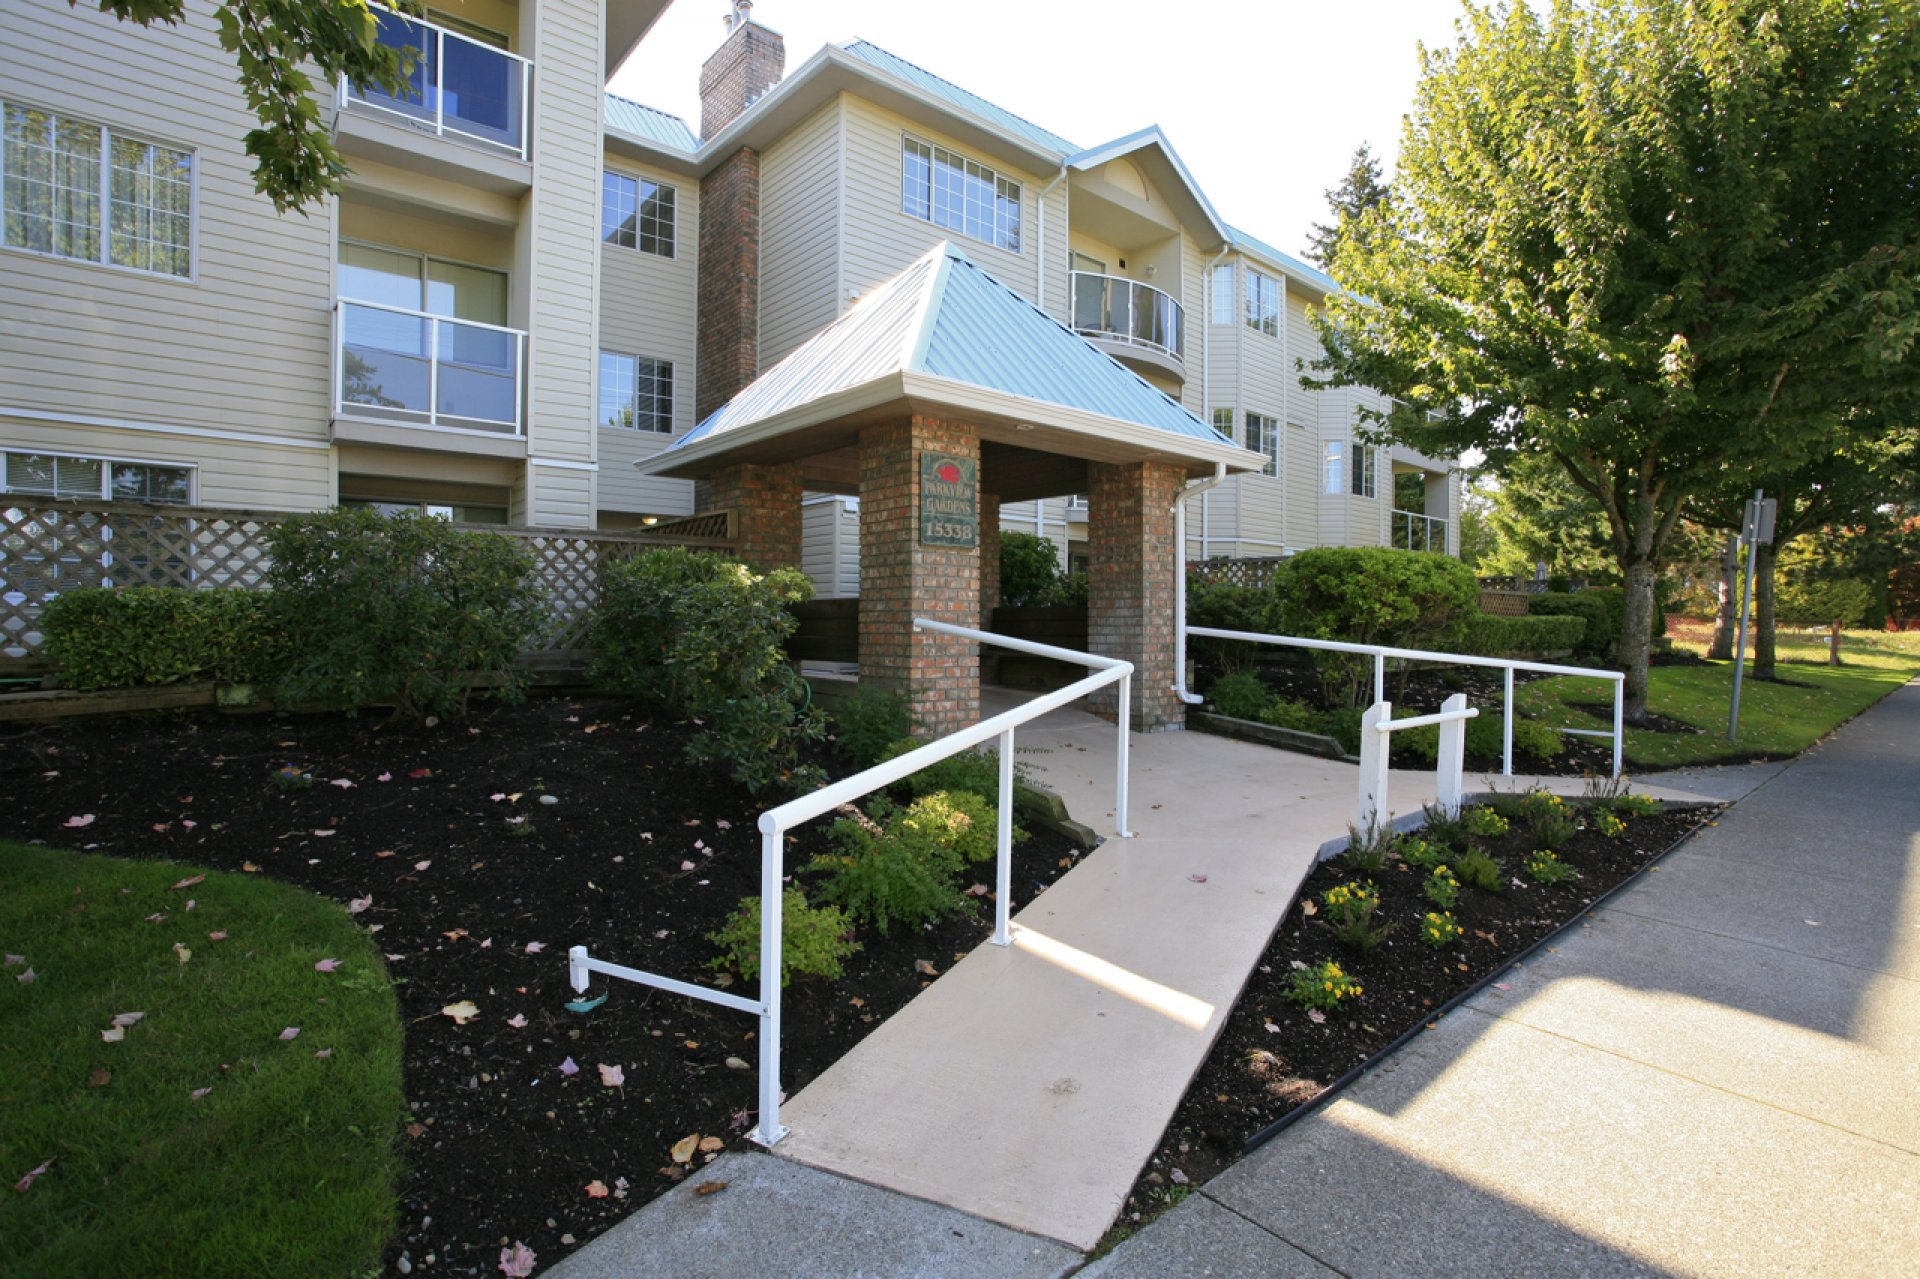 """Main Photo: 304 15338 18 Avenue in White Rock: King George Corridor Condo for sale in """"Parkview Gardens"""" (South Surrey White Rock)  : MLS®# R2243887"""